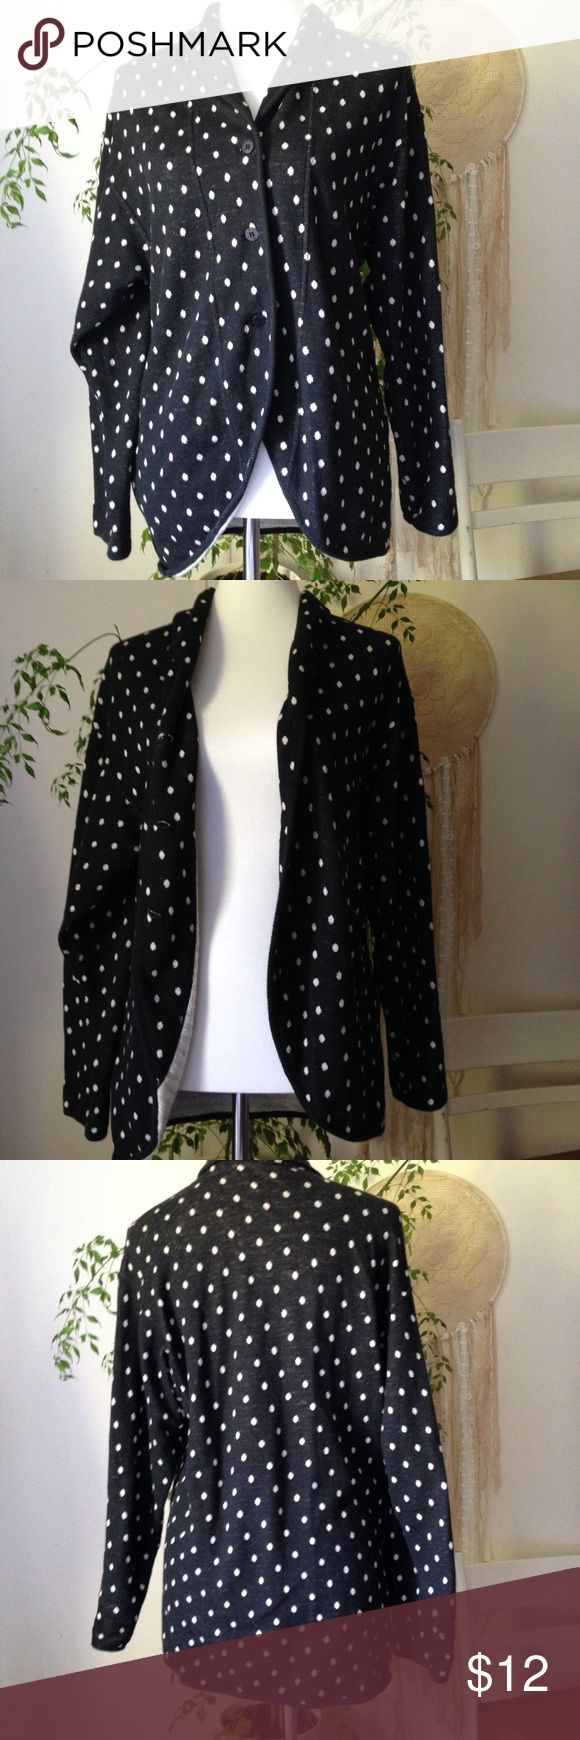 Maxstudio Basics Black&White Polka Dot Cardigan Cute cardigan for everyday outfits. Looks great open and buttoned up. Nice soft material that is not too thick. Size M 8/10 Max Studio Sweaters Cardigans